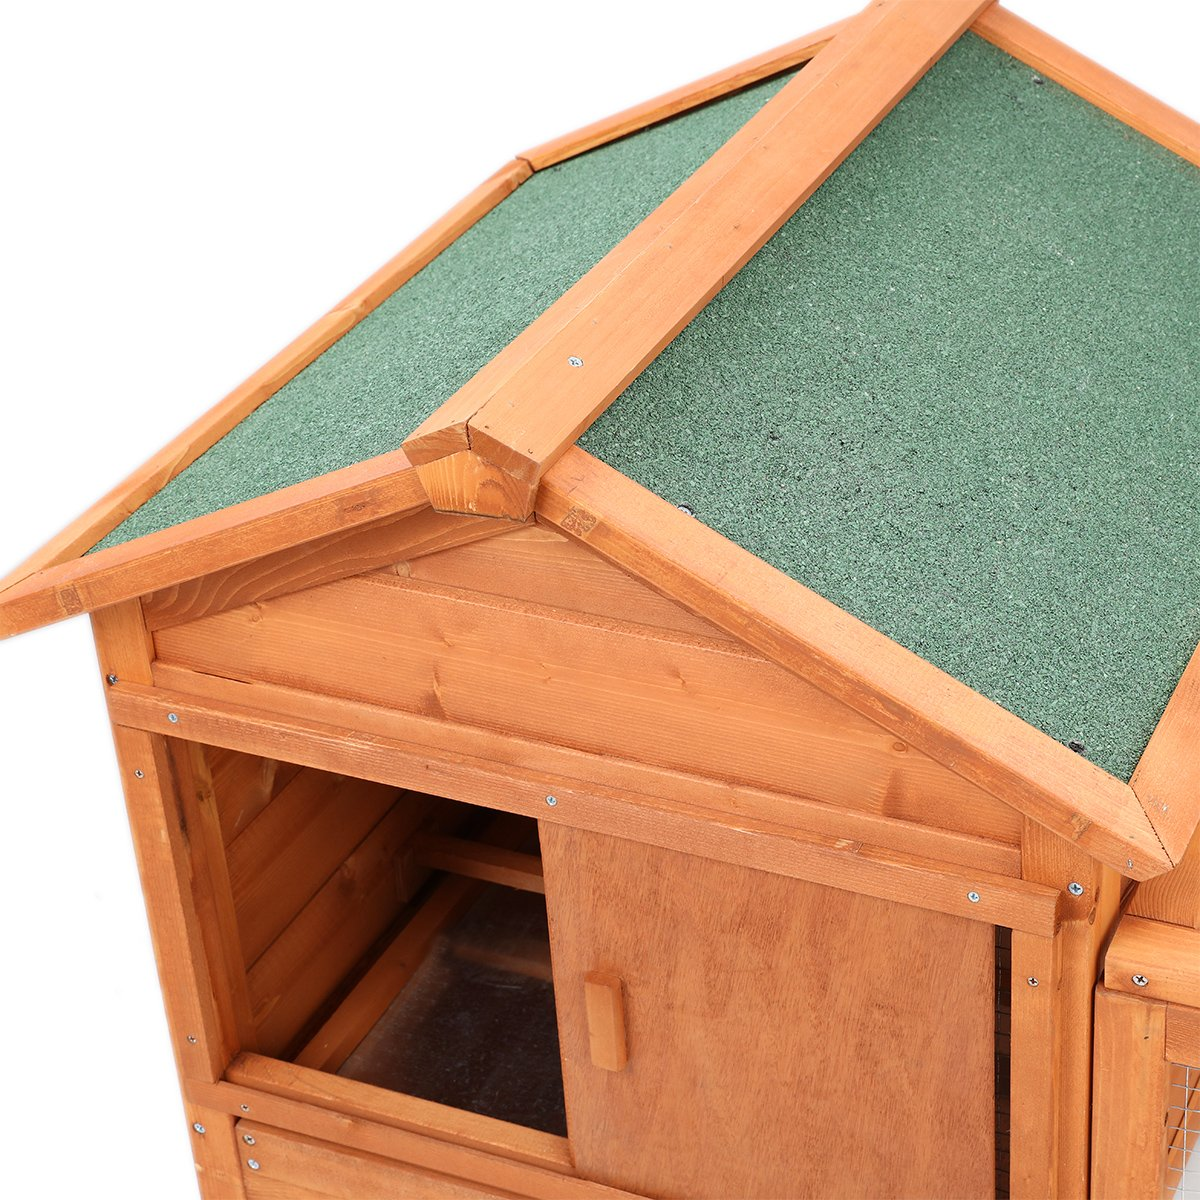 Magshion Wooden Chicken Coop Rabbit Bunny Hutch Pet Cage Wood Small Animal Poultry Cage Run Indoor by Magshion (Image #3)